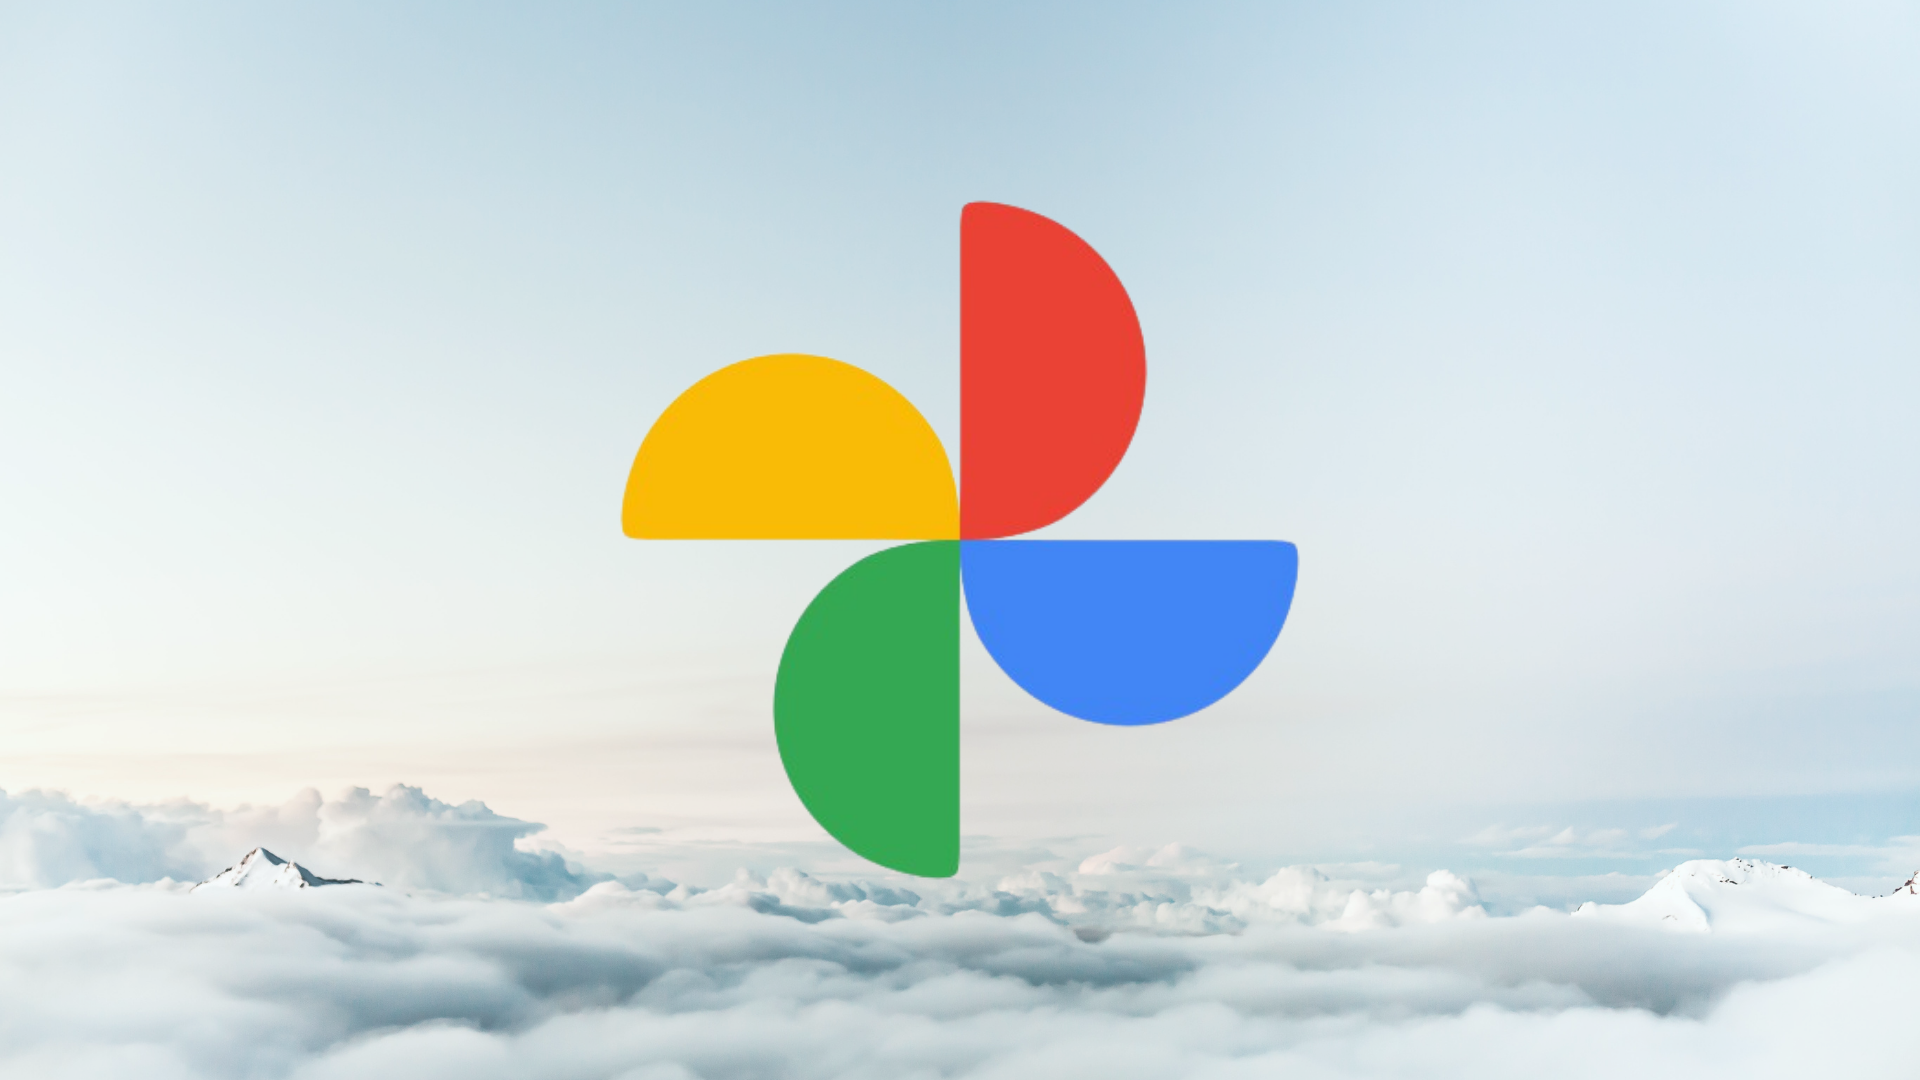 Here's why Google Photos uploads for some aren't counting against account storage